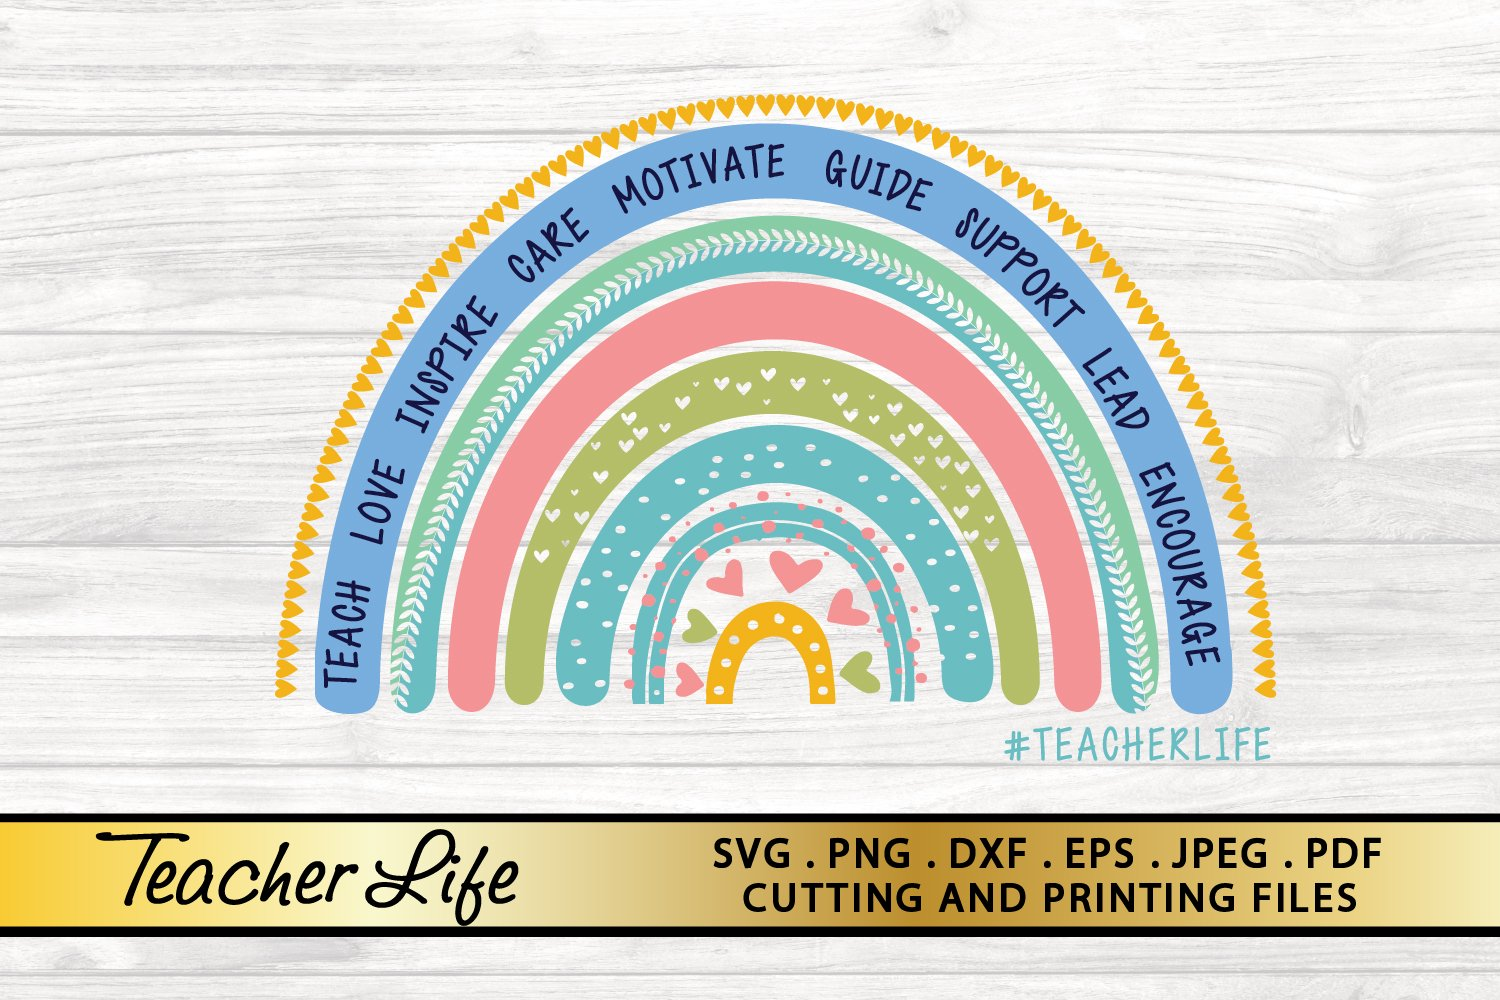 Teacher Svg Png Eps Dxf Files For Cutting And Printing 803994 Illustrations Design Bundles